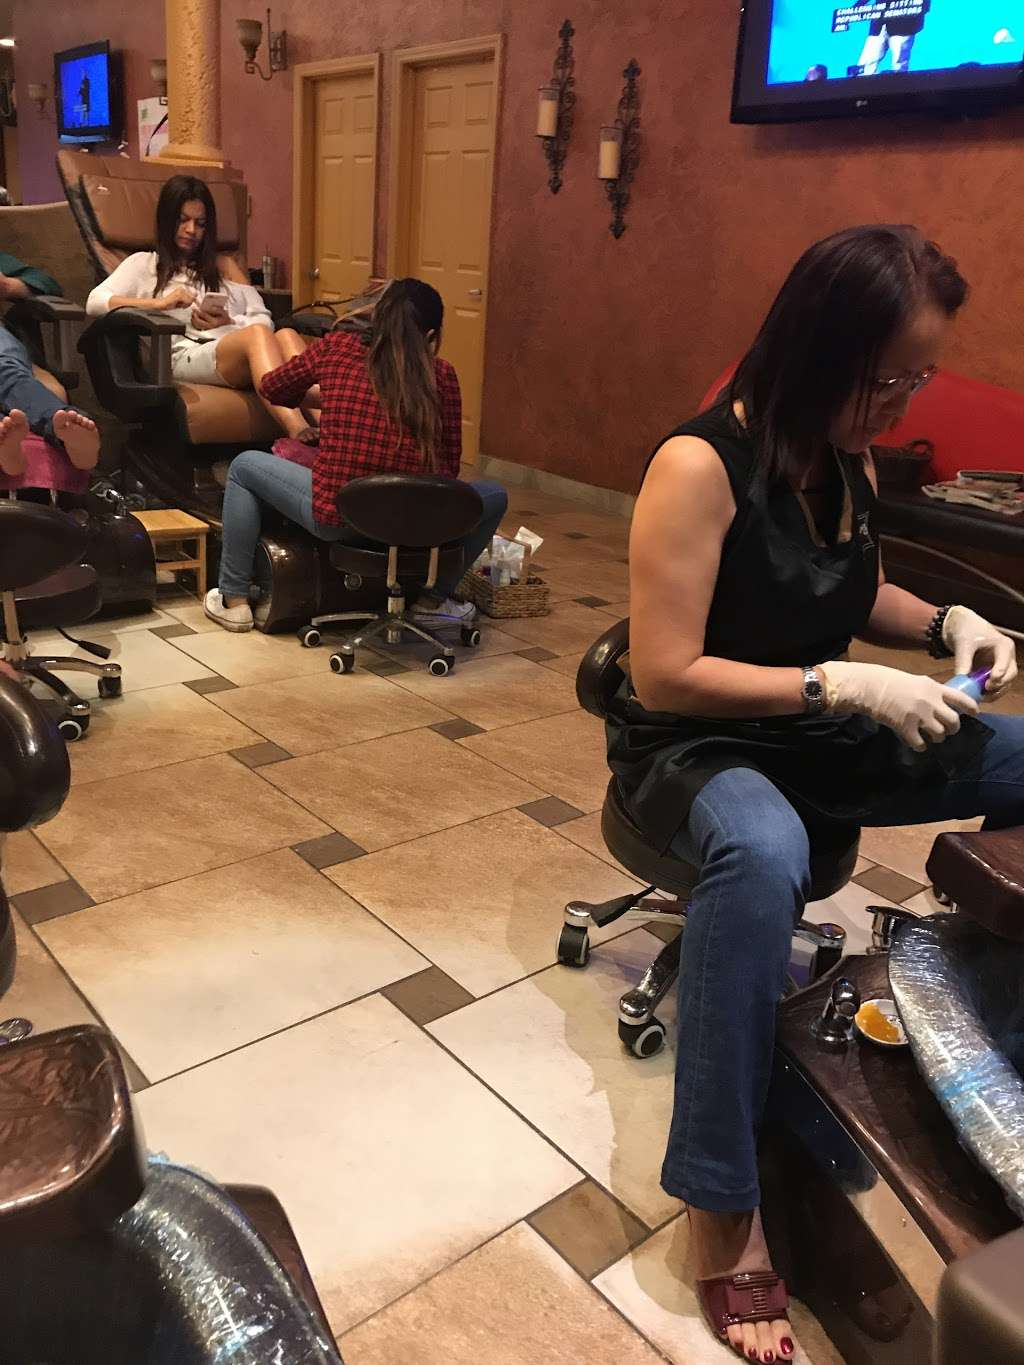 Luxury Nails And Day Spa Orlando - spa  | Photo 8 of 10 | Address: 4848 S Apopka Vineland Rd #210, Orlando, FL 32819, USA | Phone: (407) 876-3401